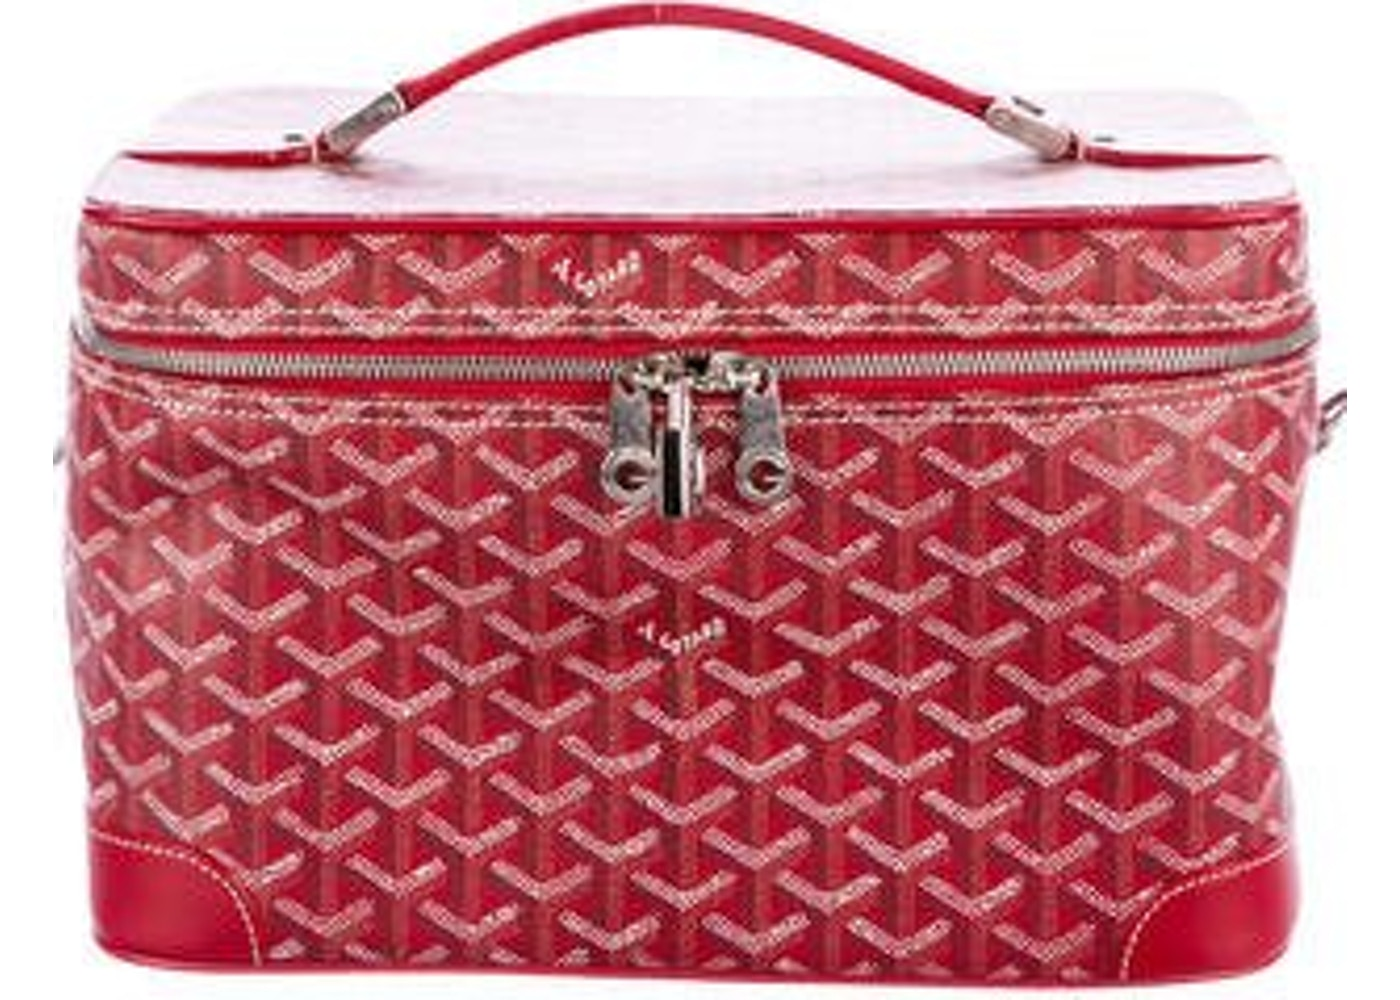 Goyard Ile De Beaute Cosmetic Bag Monogram Chevron Multicolor Red 1085e11158bfe